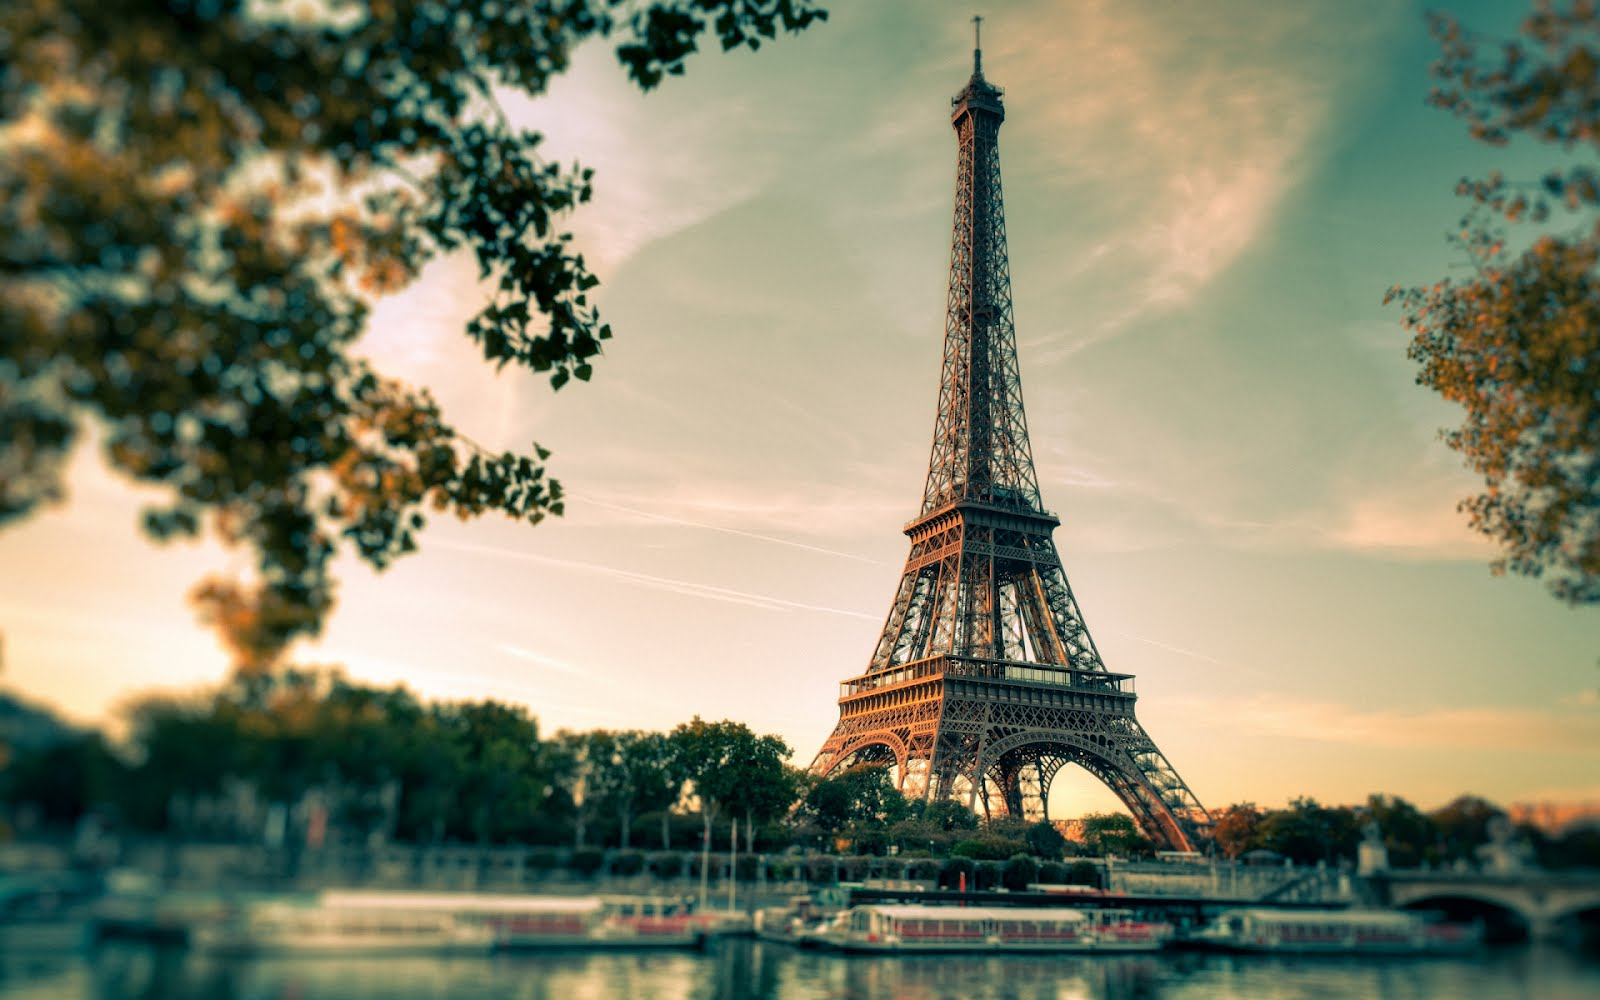 http://1.bp.blogspot.com/-darKdq0dEi8/UC-mtZW2CCI/AAAAAAABER0/Y8qm7nUNP3g/s1600/lovely-eiffel-tower-view-1920x1200-wallpaper-torre-de-paris.jpg